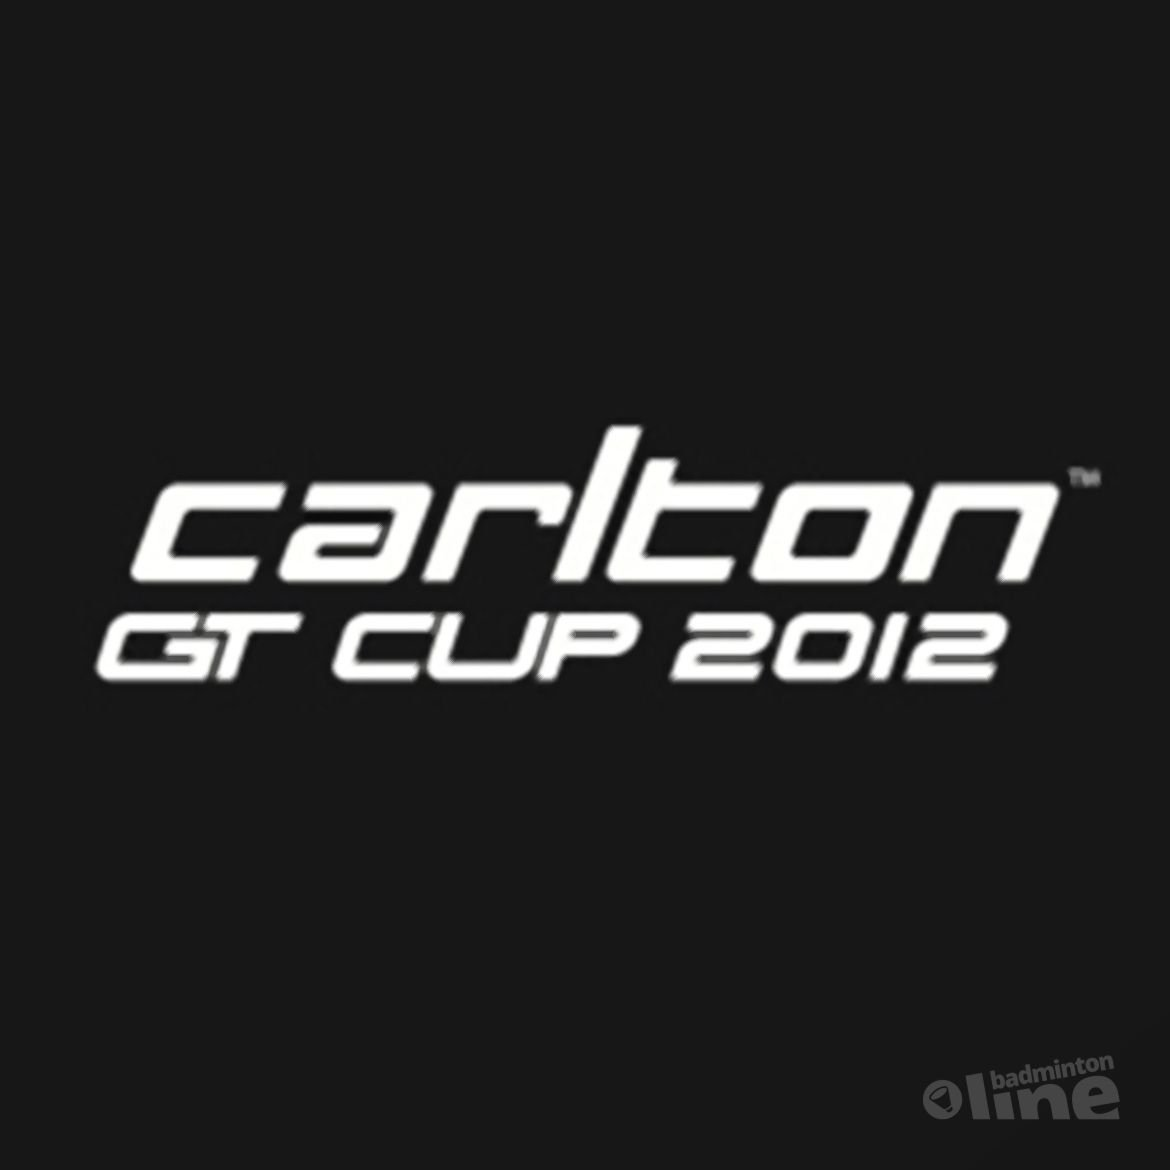 Inschrijving Carlton GT Cup 2012 geopend